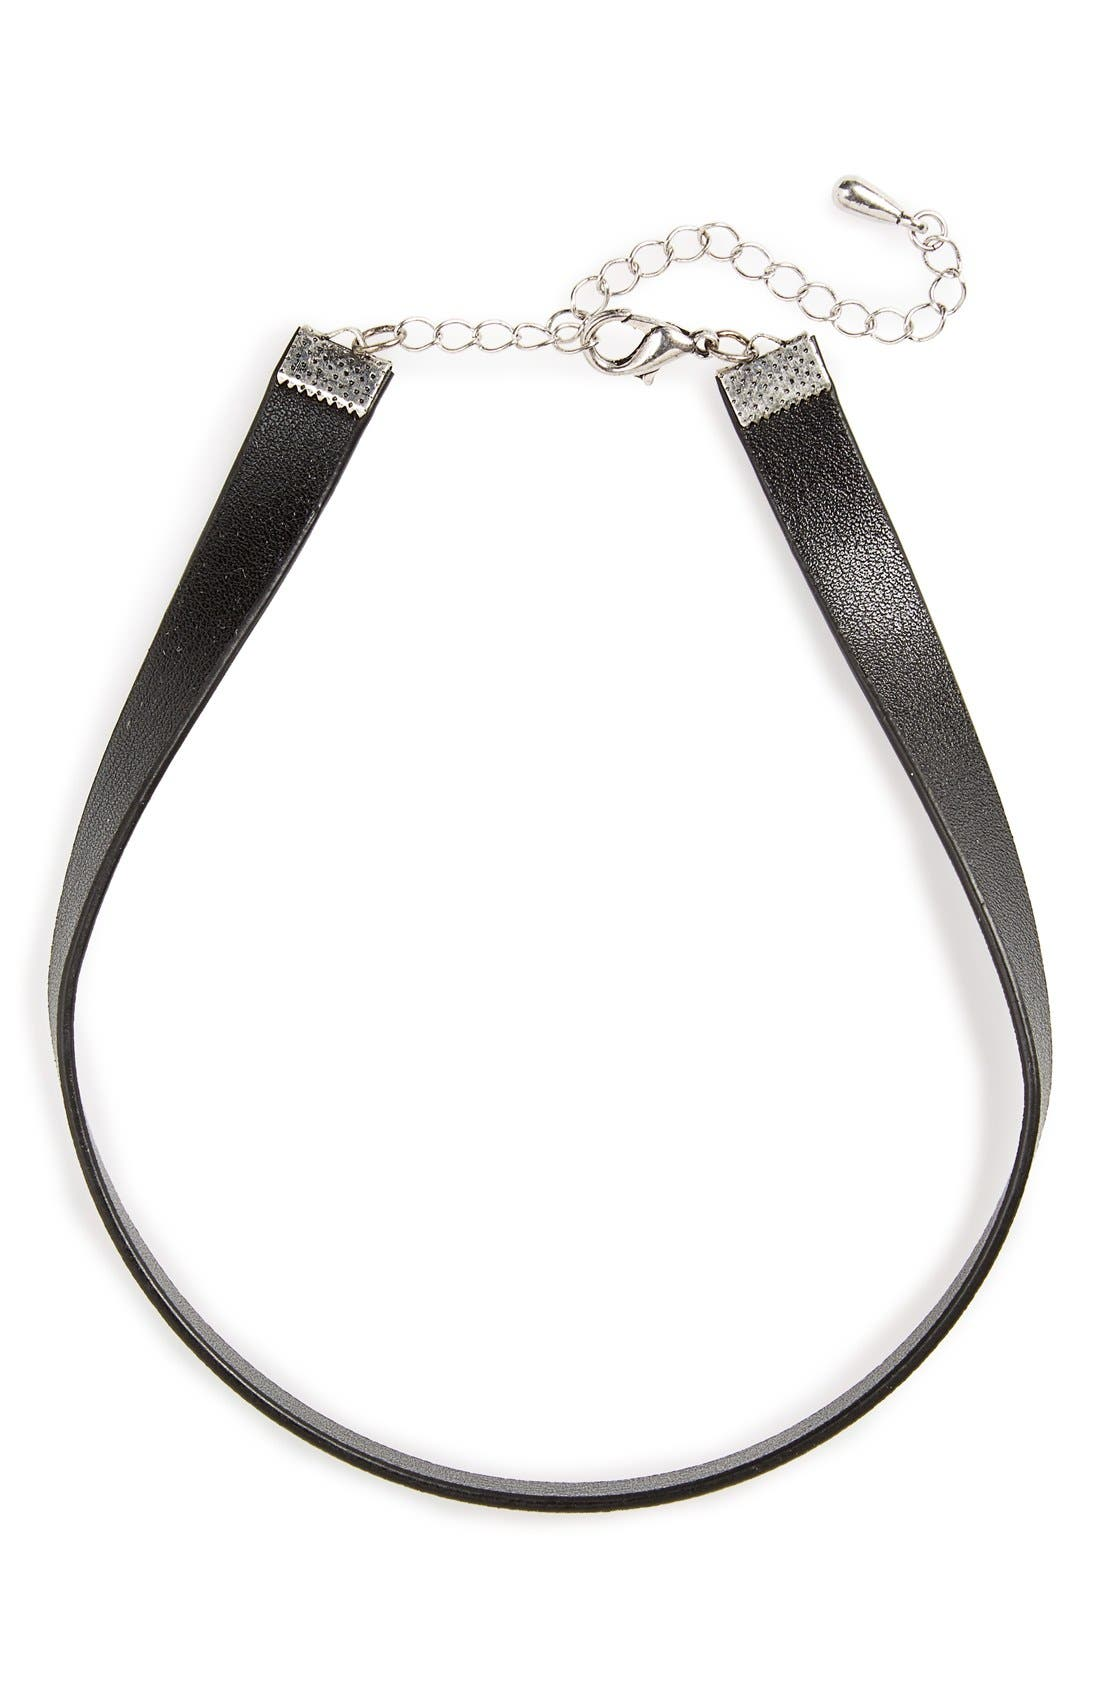 Faux Leather Choker,                             Alternate thumbnail 4, color,                             Black